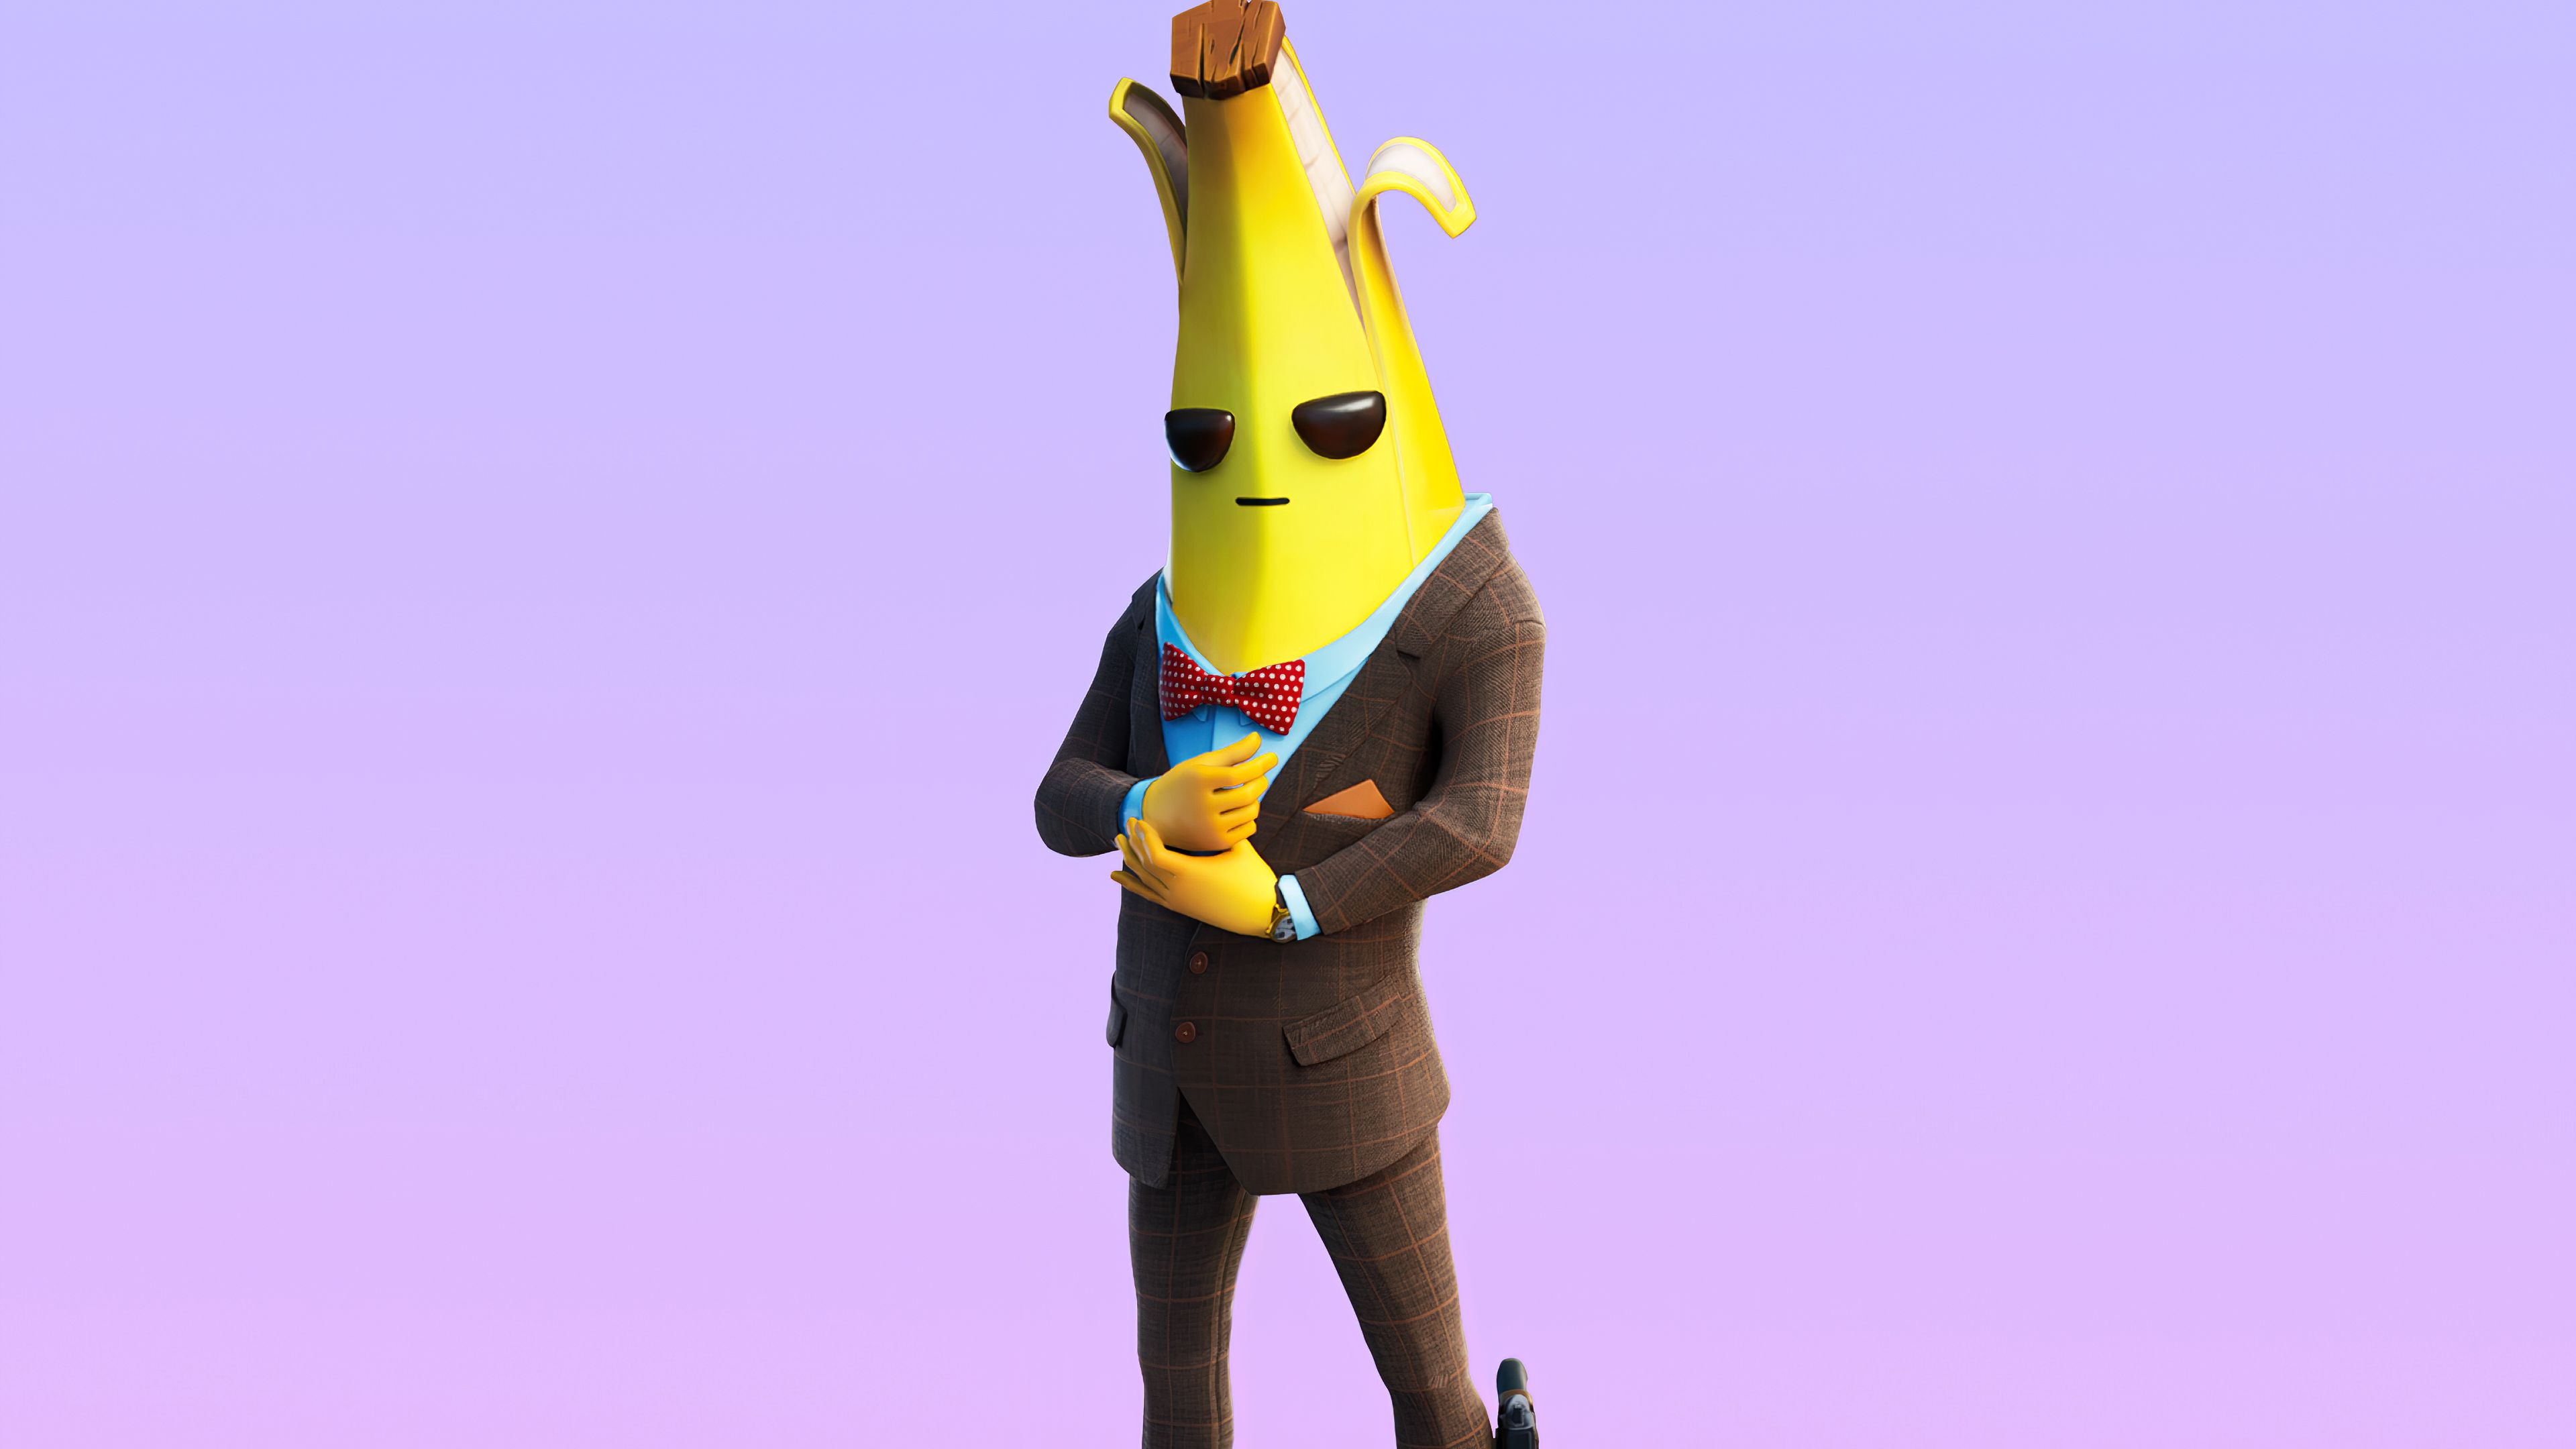 Fortnite Banana Skin Wallpapers Top Free Fortnite Banana Skin Backgrounds Wallpaperaccess